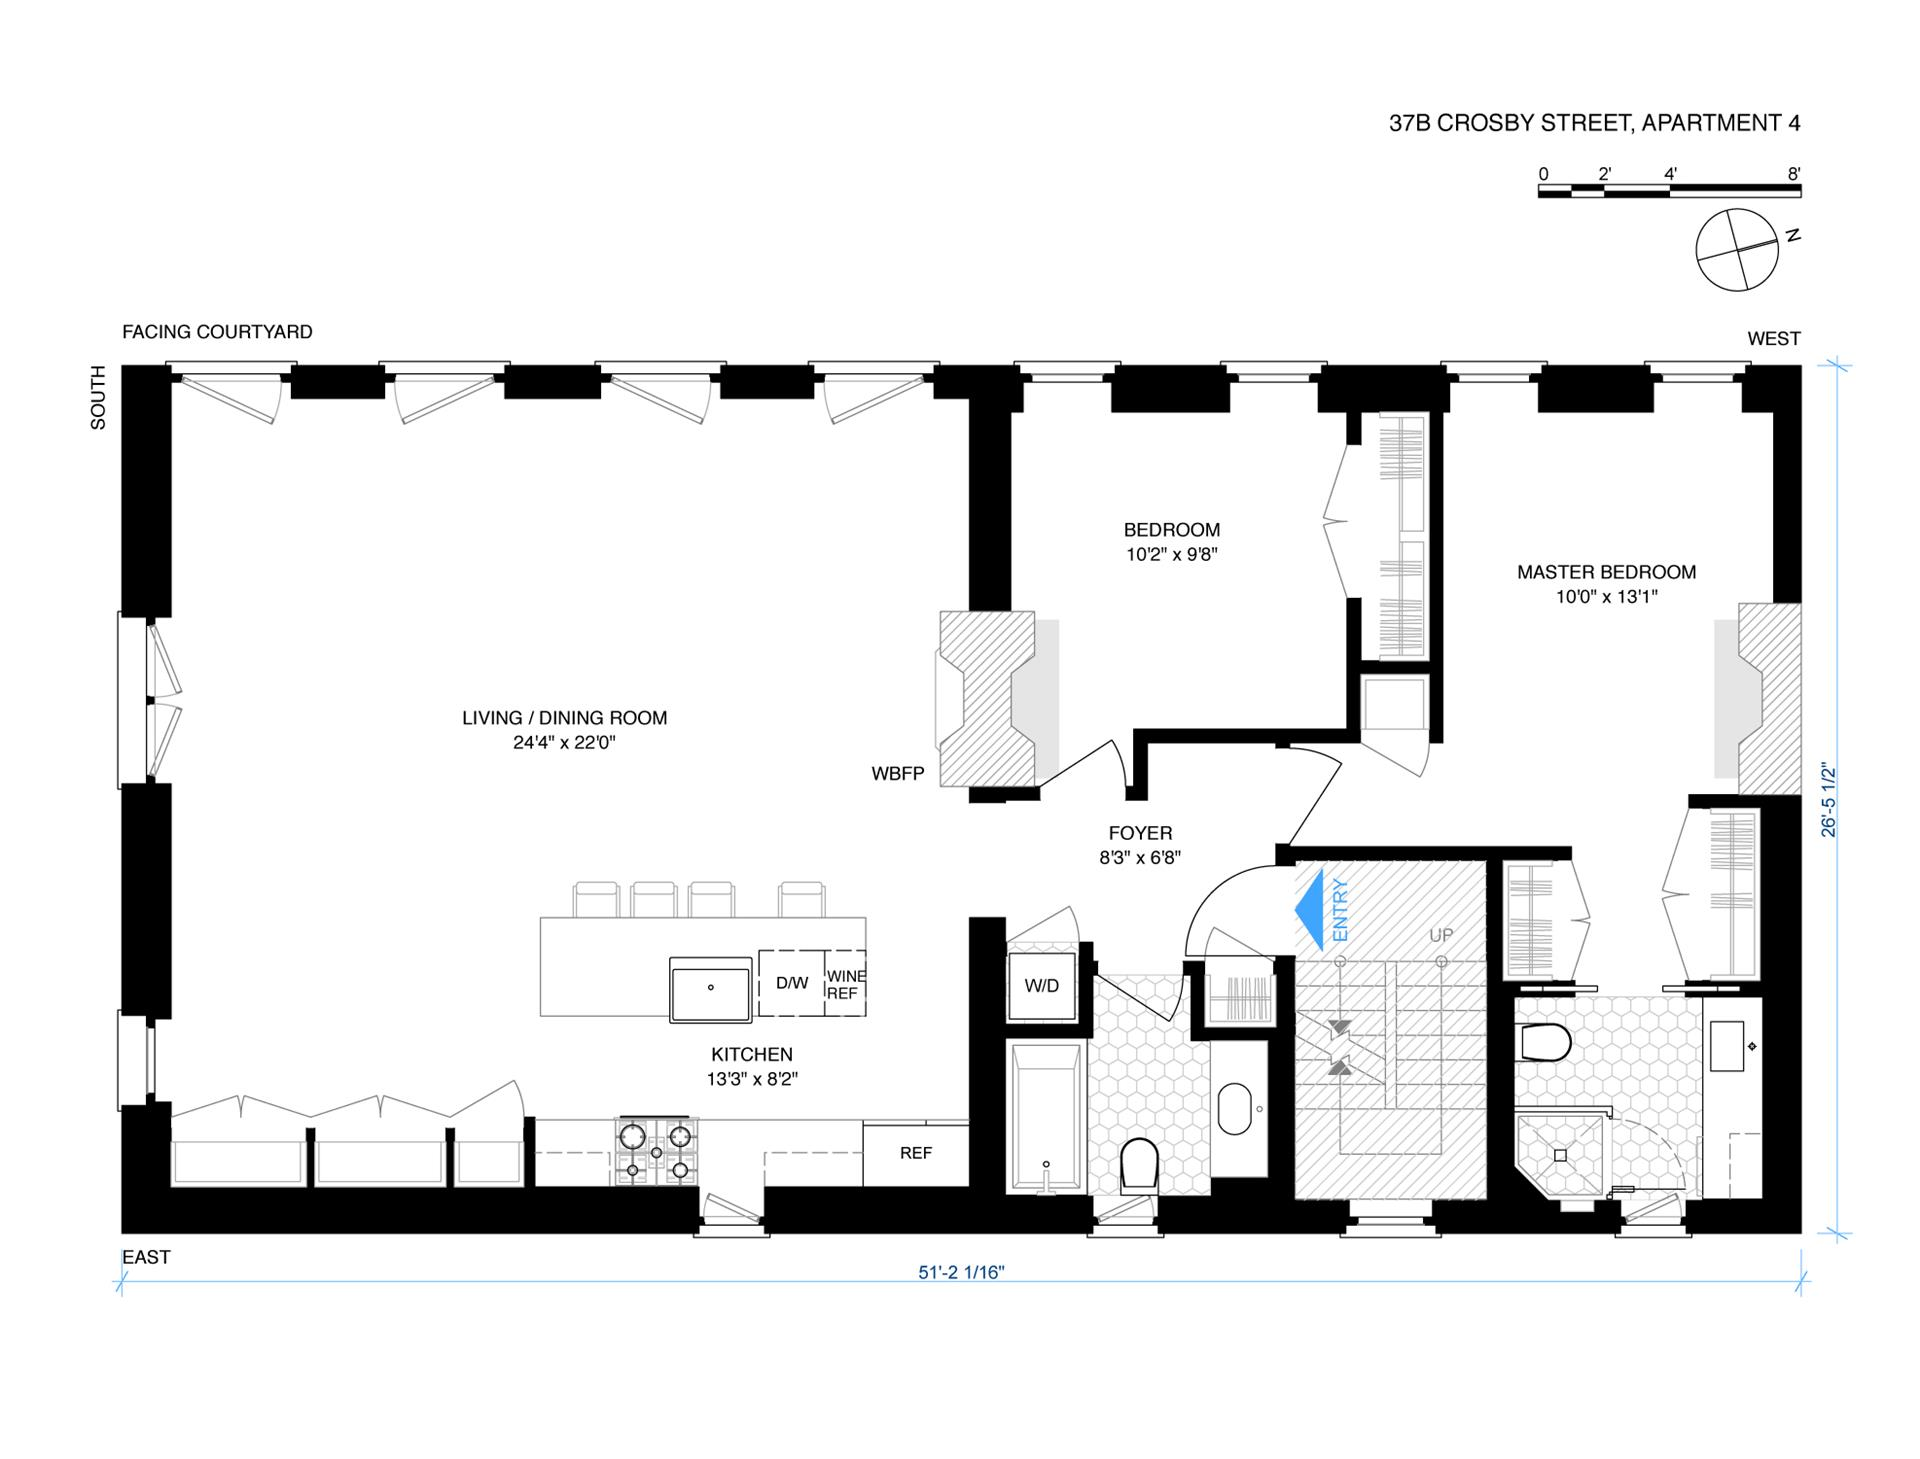 Floor plan of 37B Crosby St, 4 - SoHo - Nolita, New York